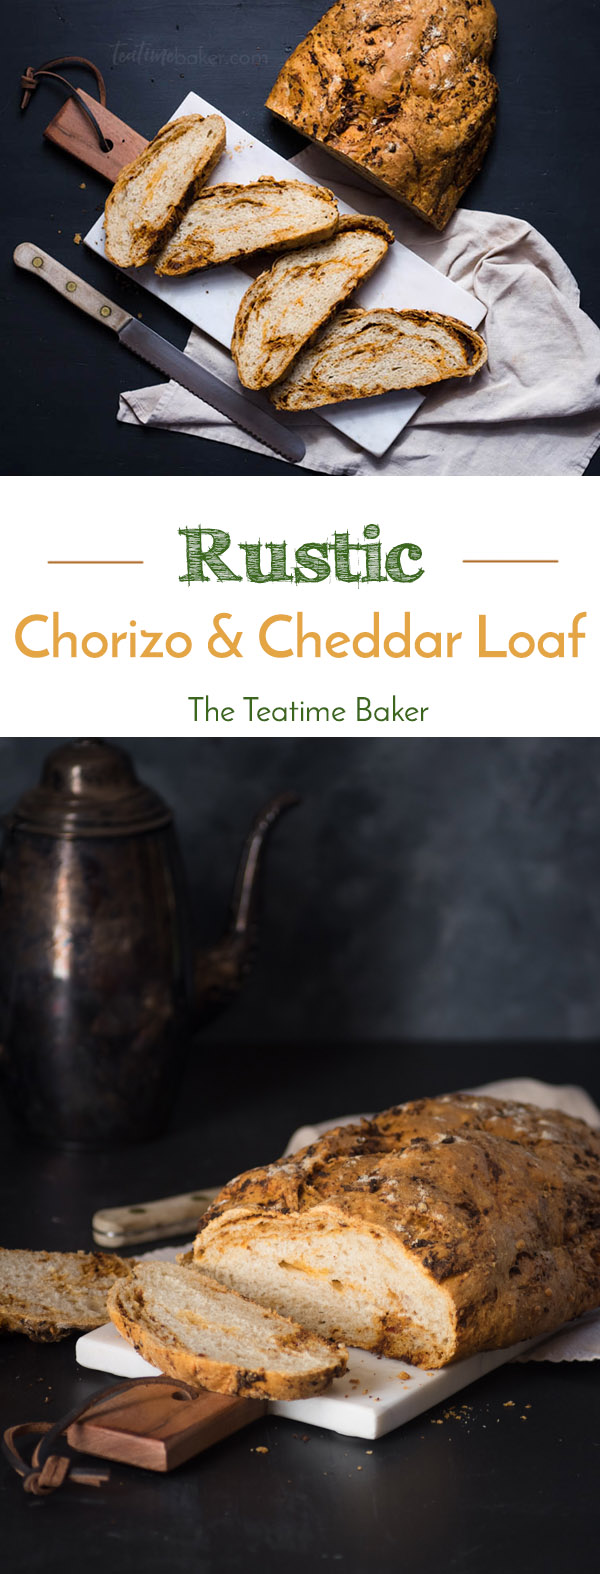 Rustic Chorizo and Cheddar Loaf